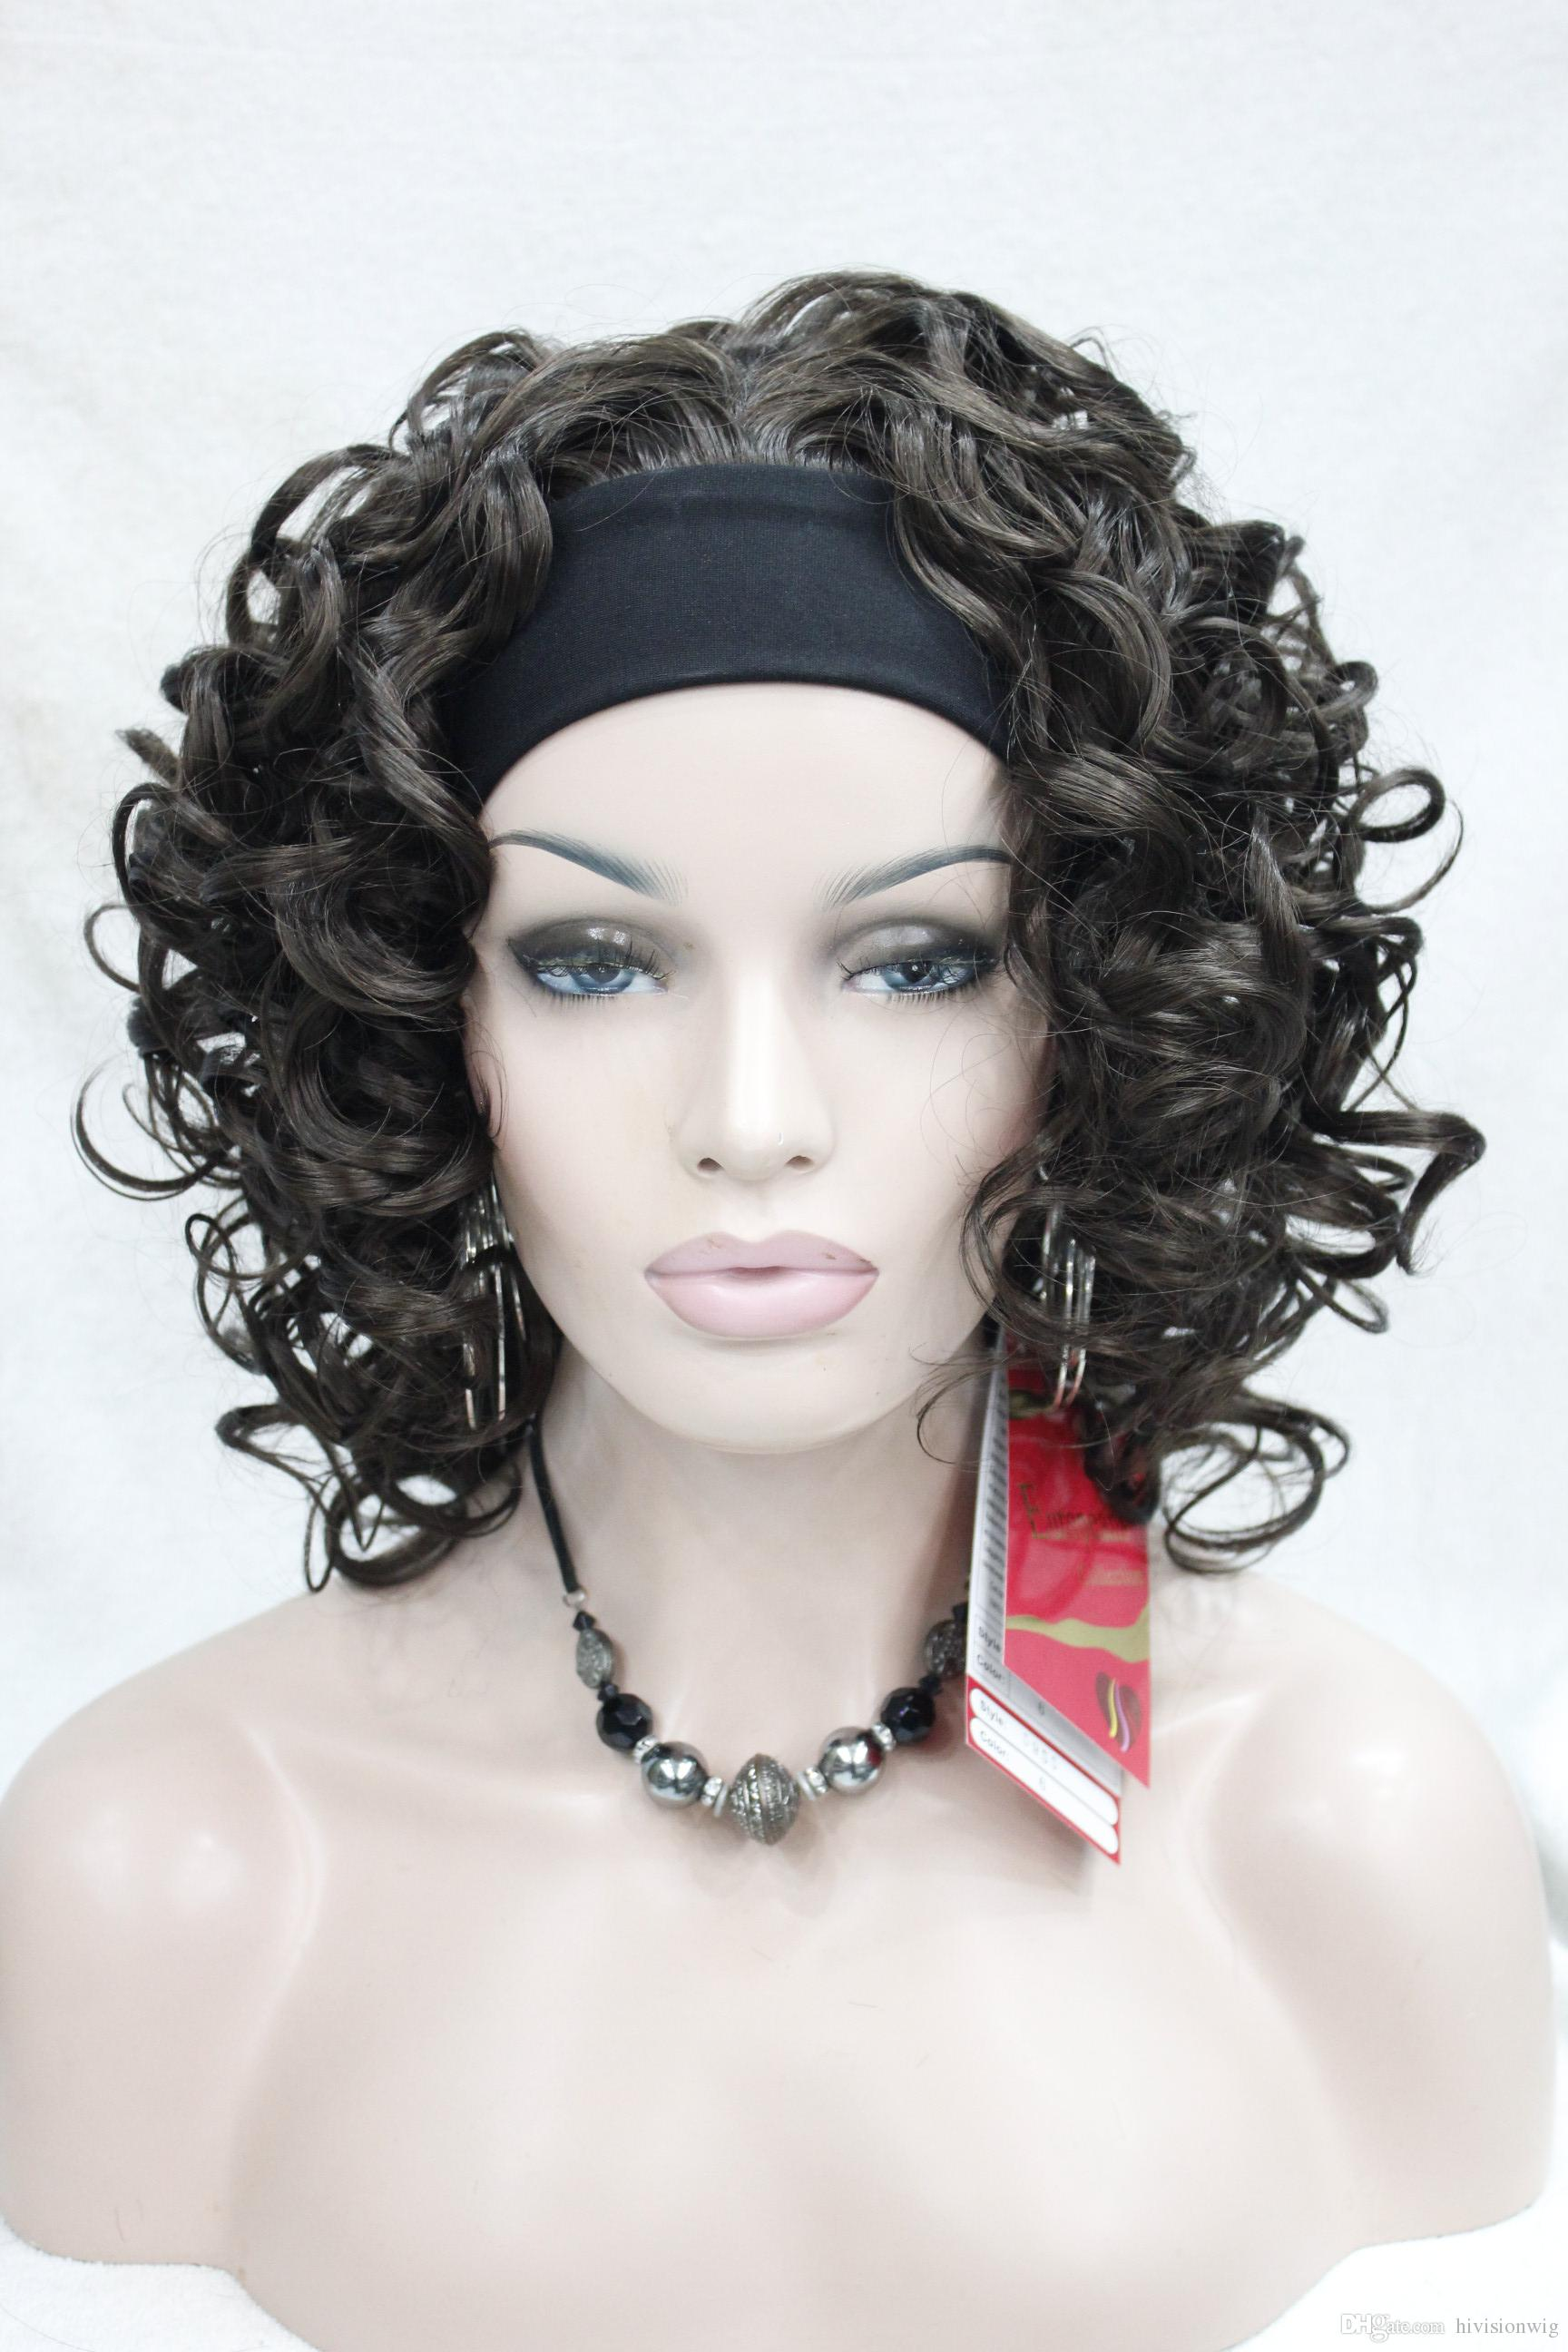 HIVISION Hot super sexy Dark Chocolate 3/4 wig with headband Medium curly women's half wig